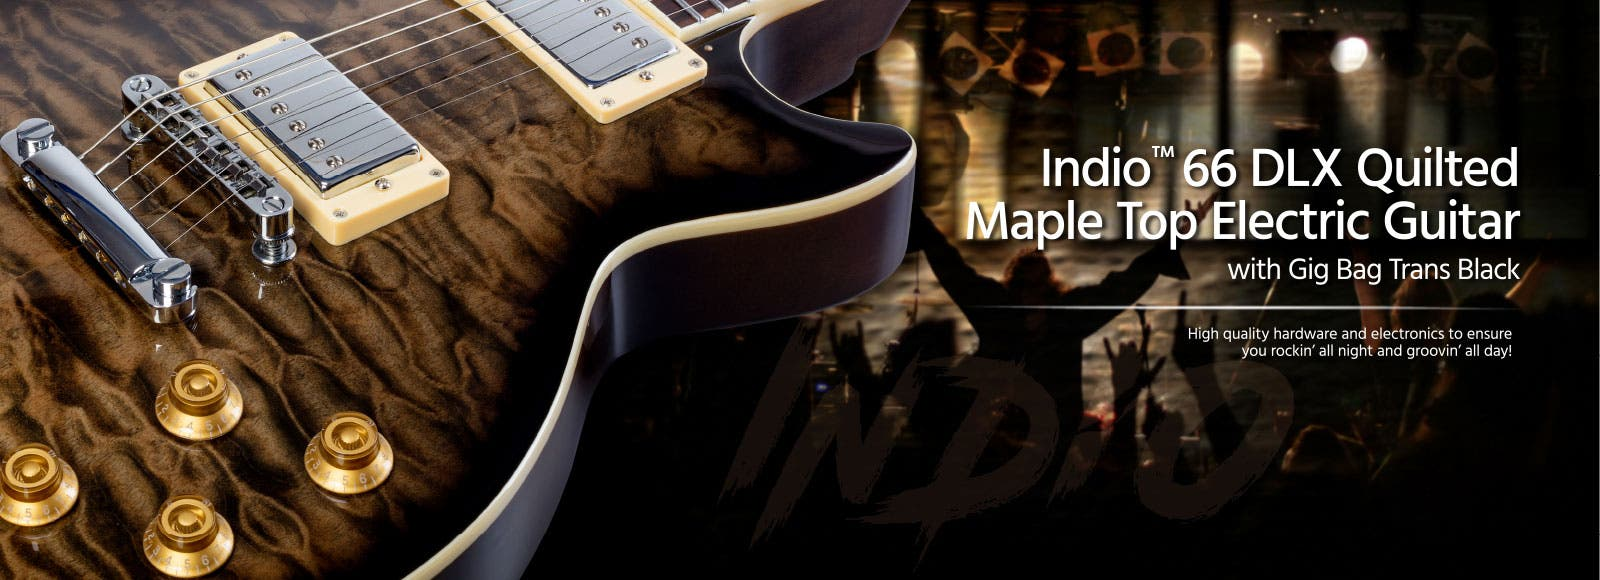 Indio 66 DLX Quilted Maple Top Electric Guitar